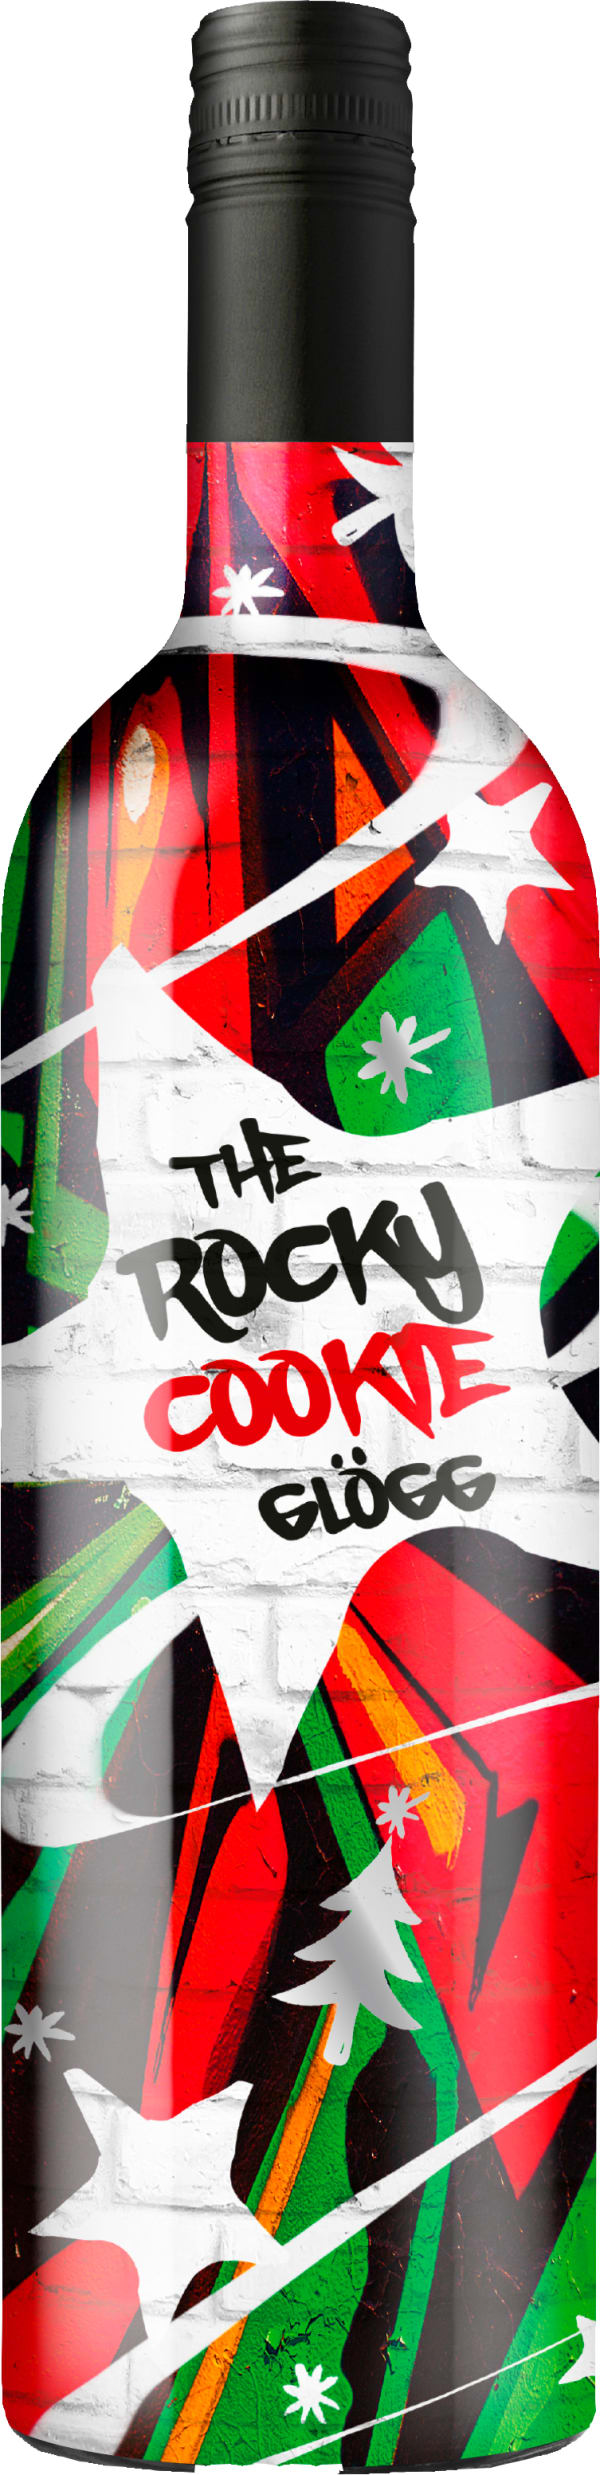 The Rocky Cookie Glögg